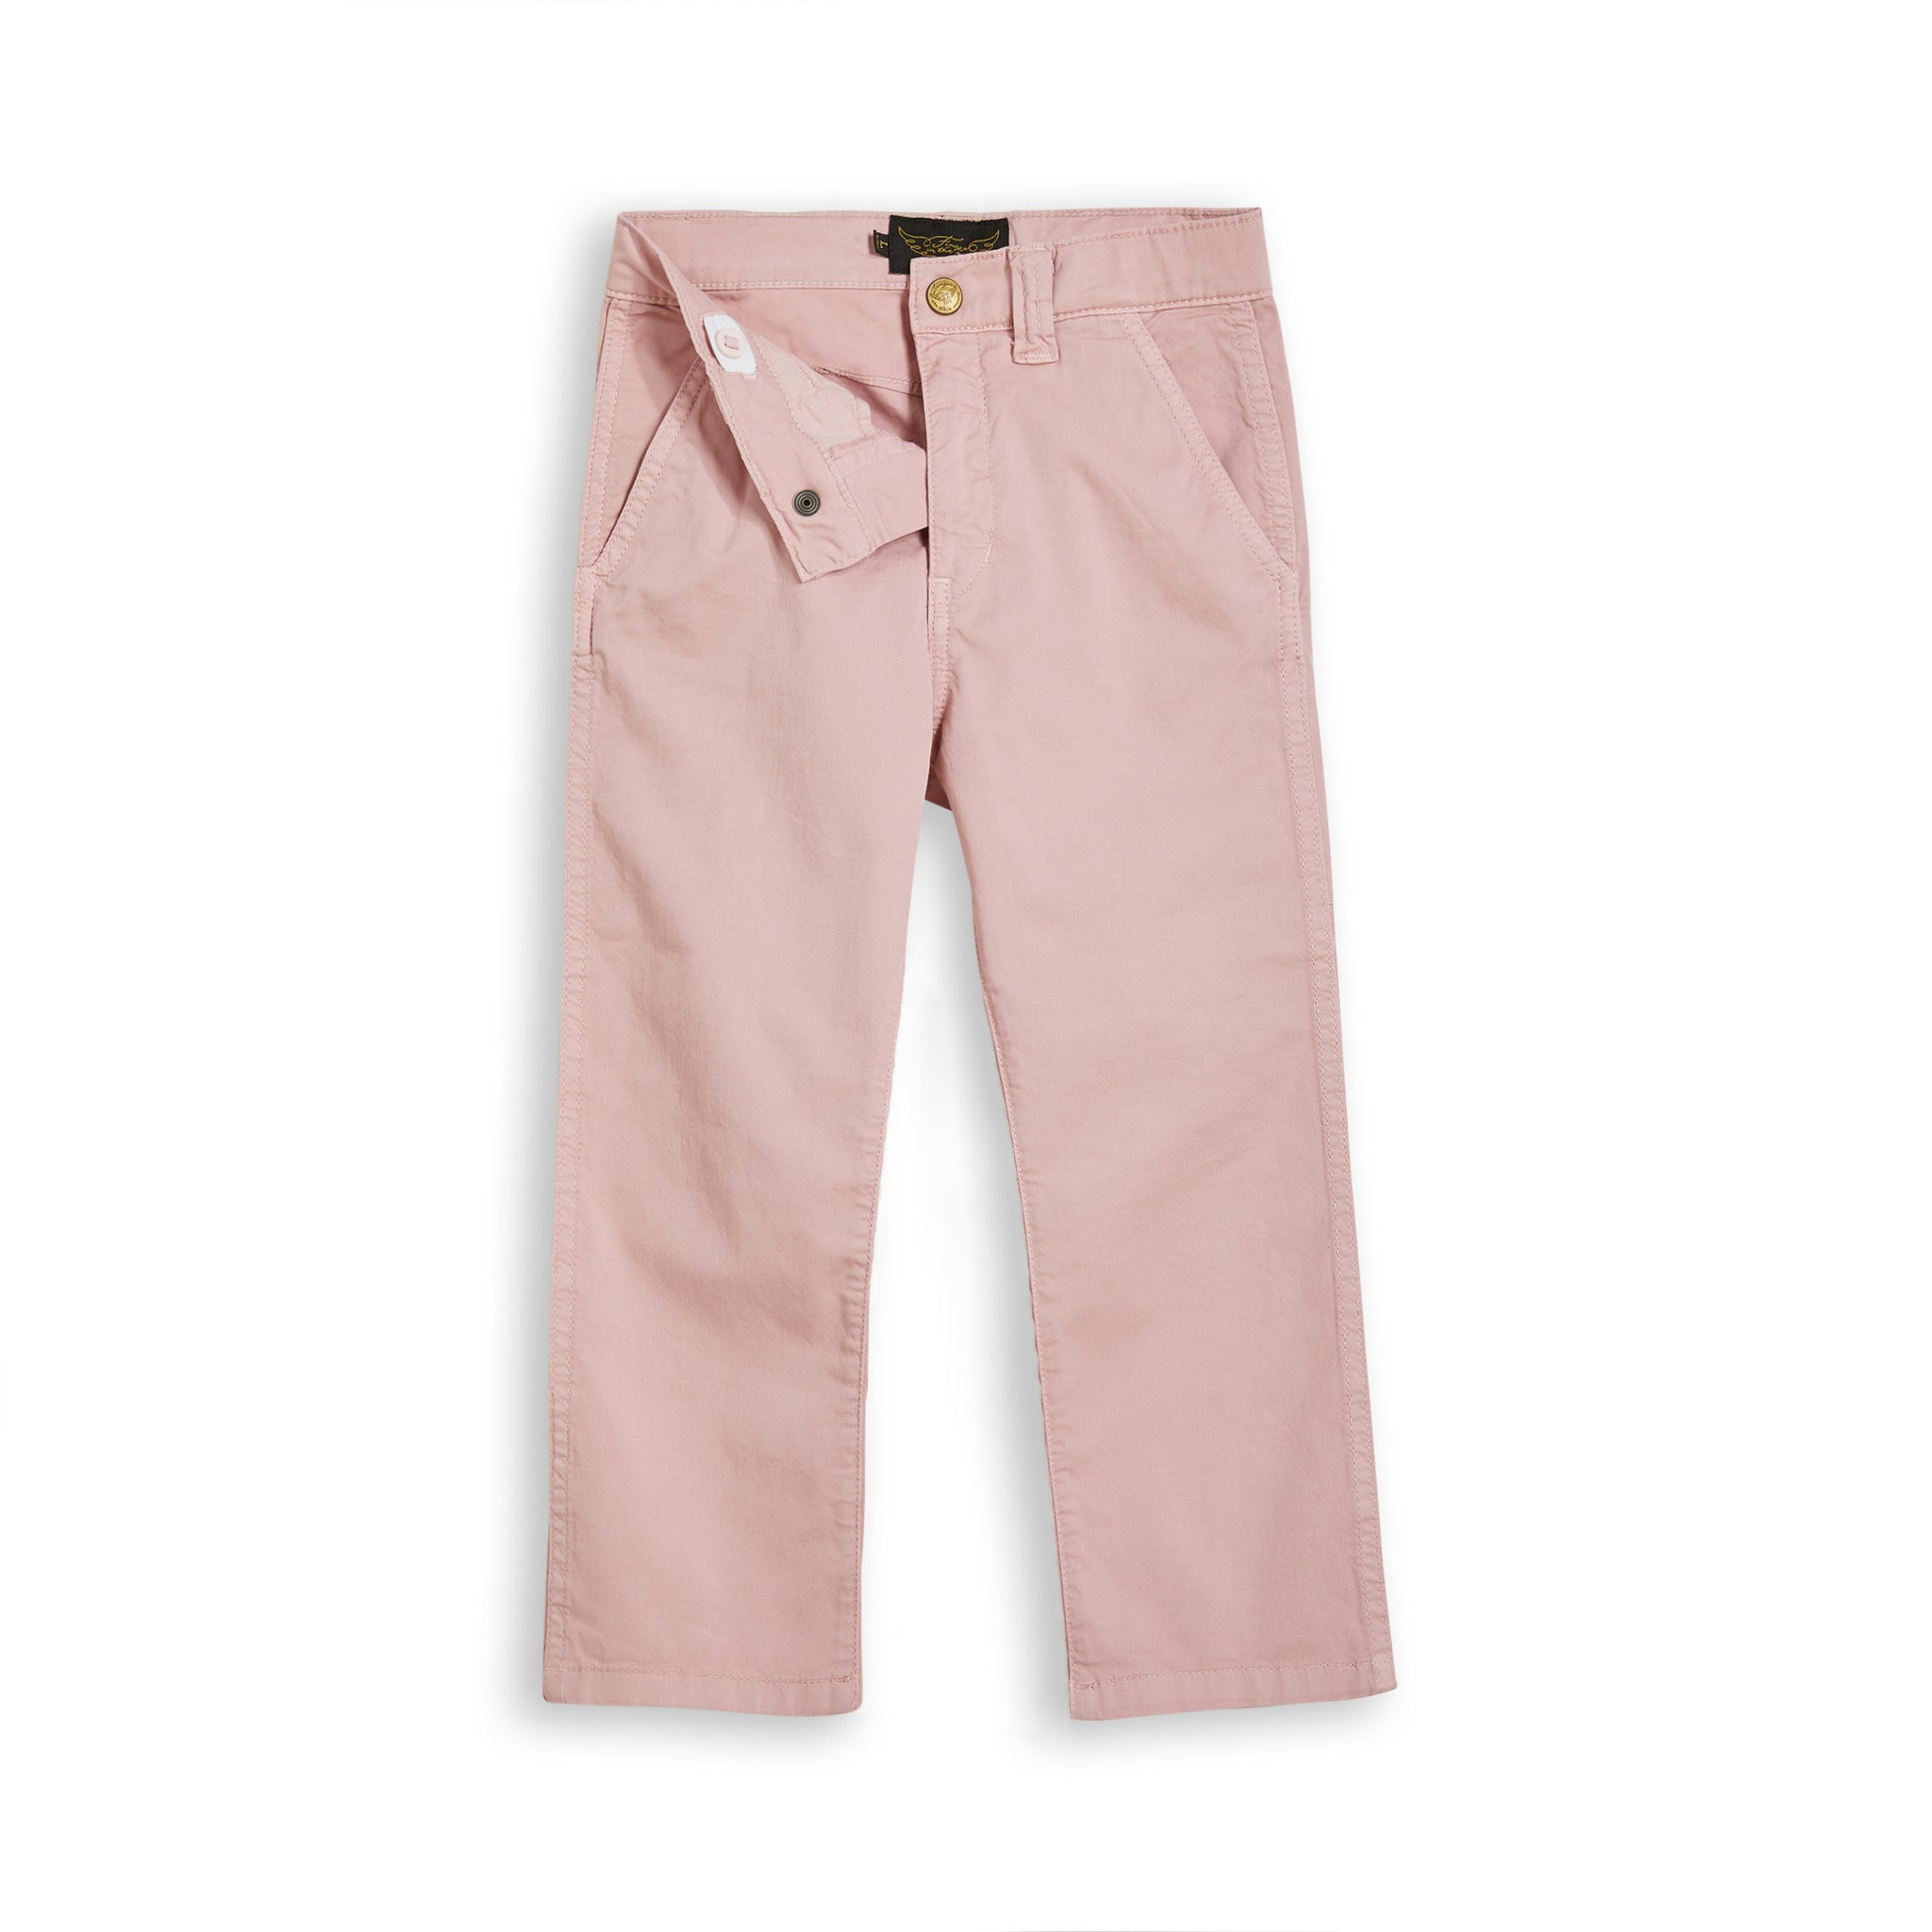 SISTER Pale Pink - Baggy Fit Pants 3